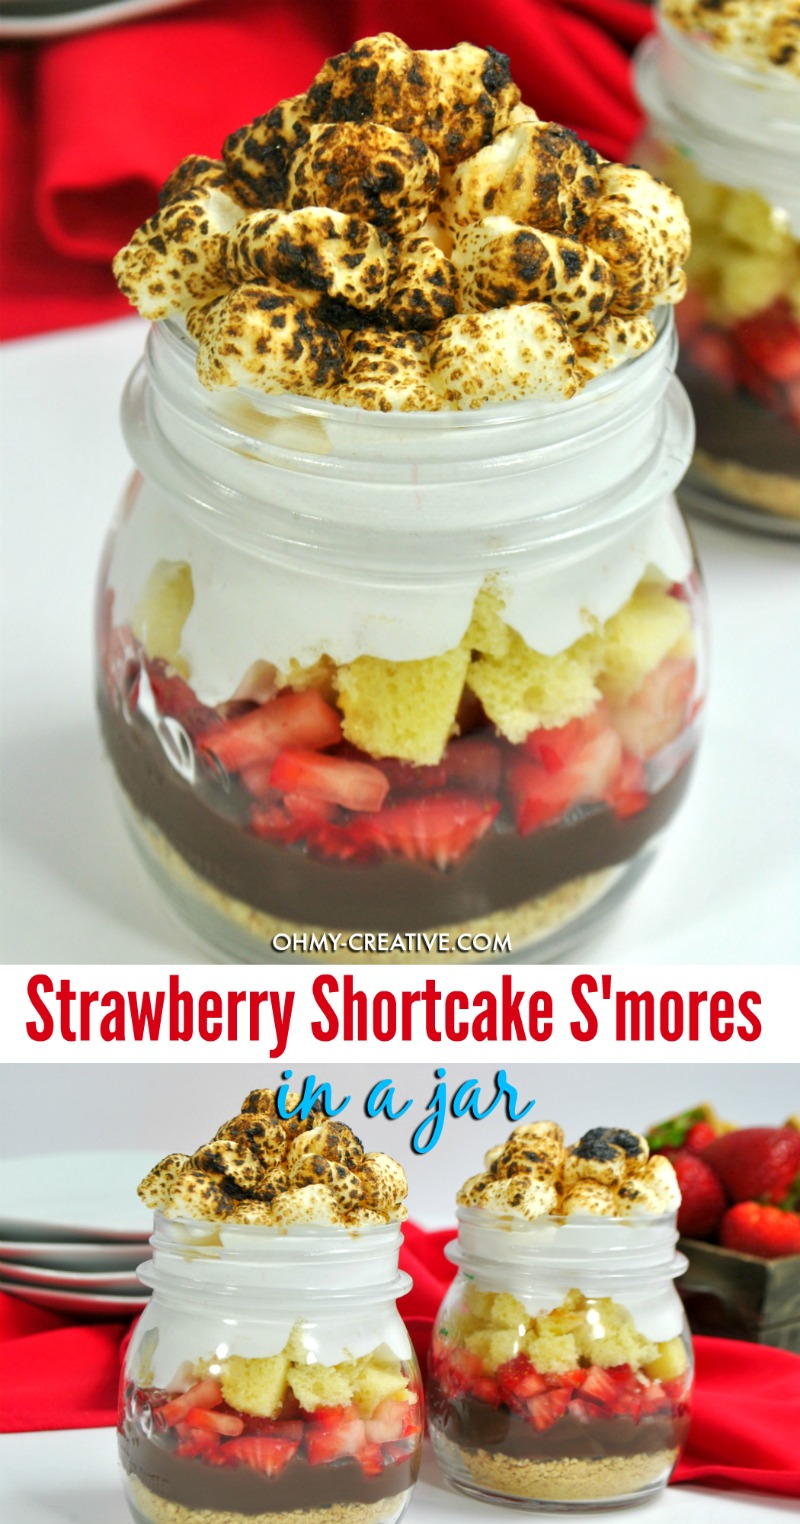 The best S'mores Strawberry Shortcake In A Jar - easy to serve for parties! OHMY-CREATIVE.COM | Strawberry S'mores | strawberry shortcake with pound cake | strawberry shortcake dessert | #strawberryshortcake #strawberrysmores #smores #dessertrecipe #inajar #strawberryshortcakeinajar